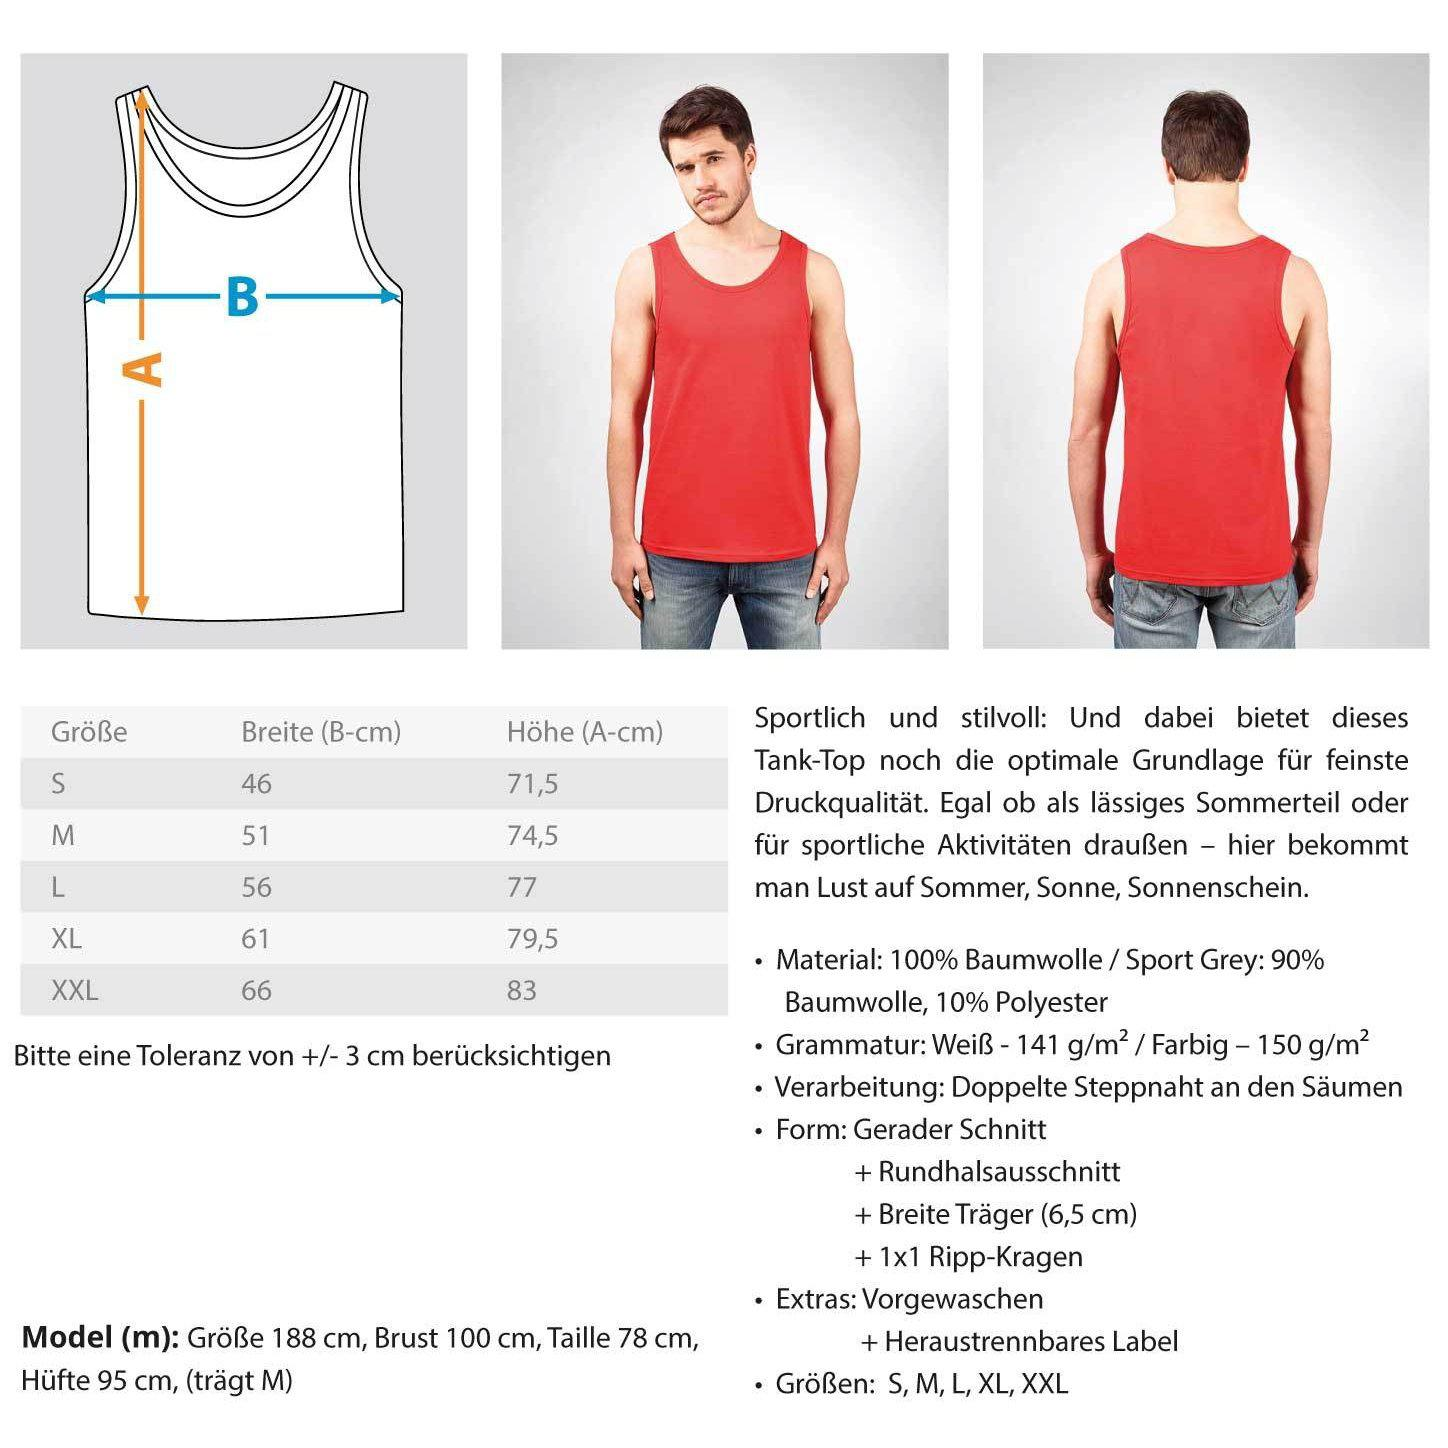 Techno Tempo White -Rave On!® - Herren Tanktop Herren Tank-Top - Rave On!® der Club & Techno Szene Shop für Coole Junge Mode Streetwear Style & Fashion Outfits + Sexy Festival 420 Stuff